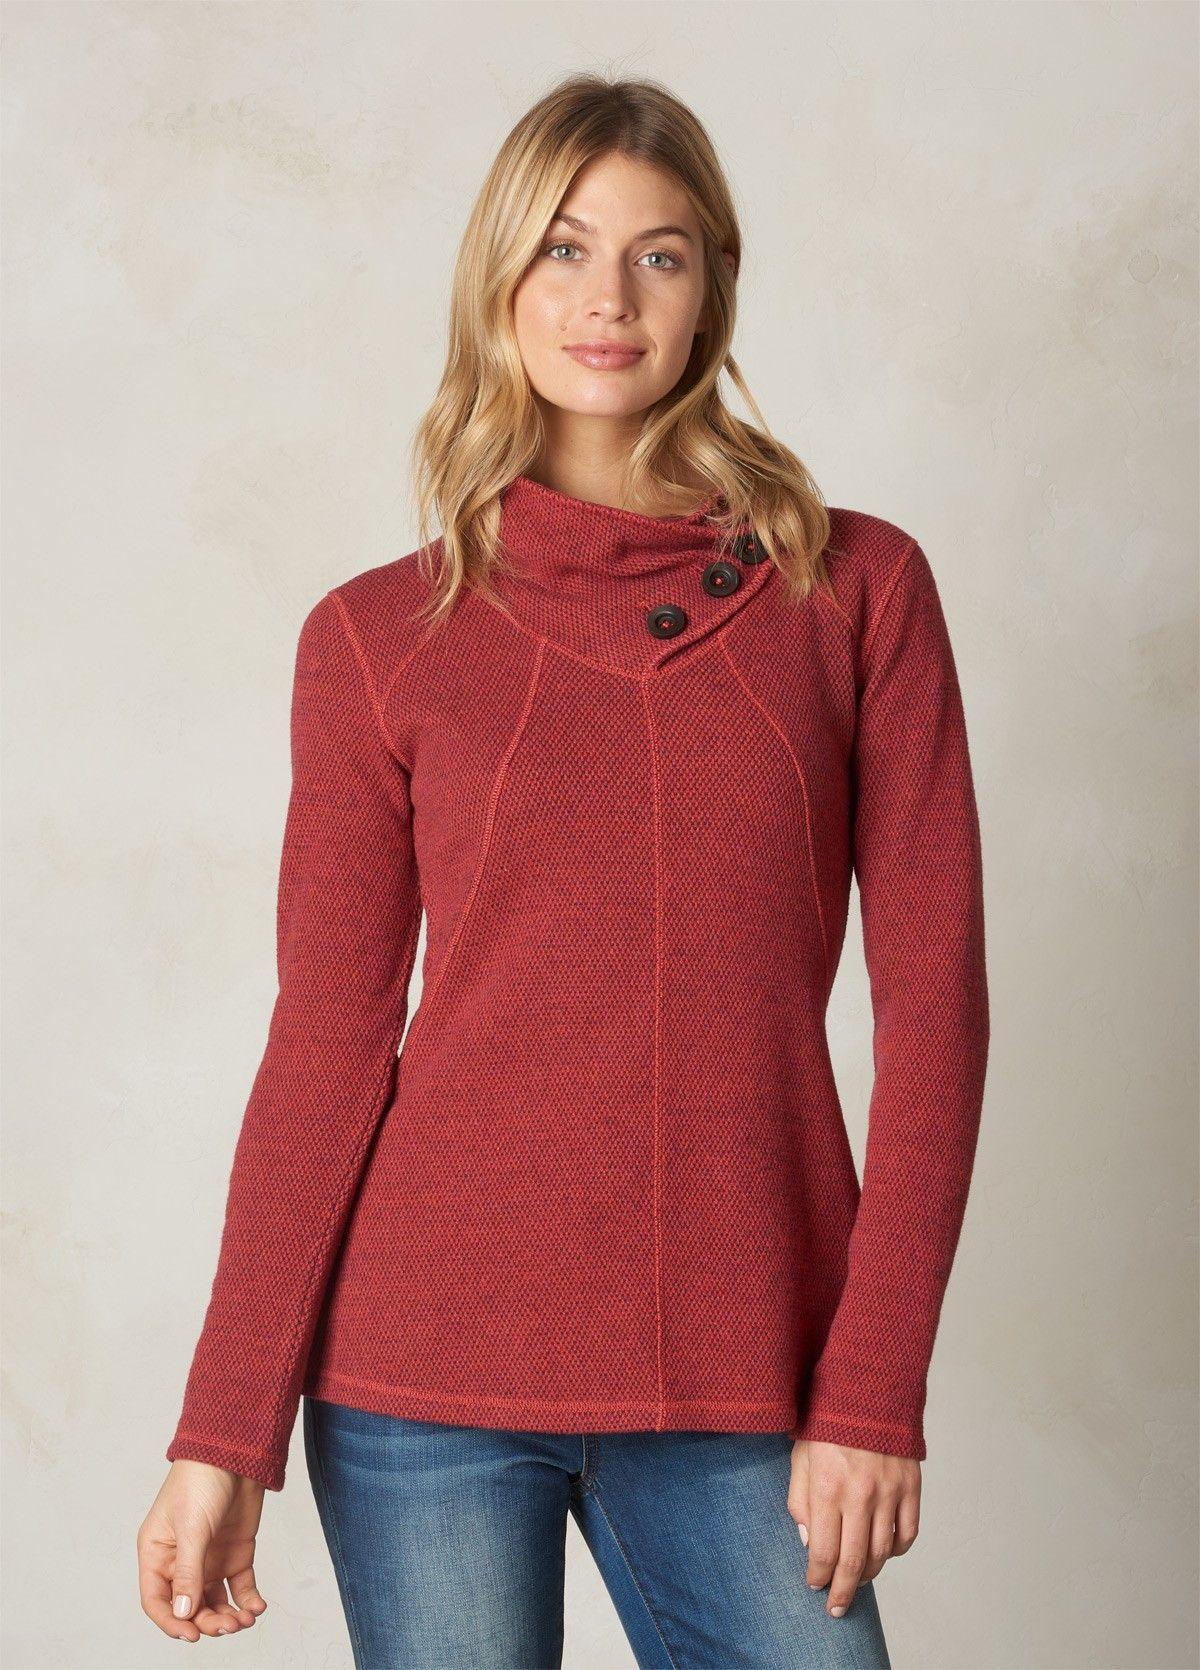 Stay cozy in this adventure-ready warm tunic sweater. Our Ebba ...